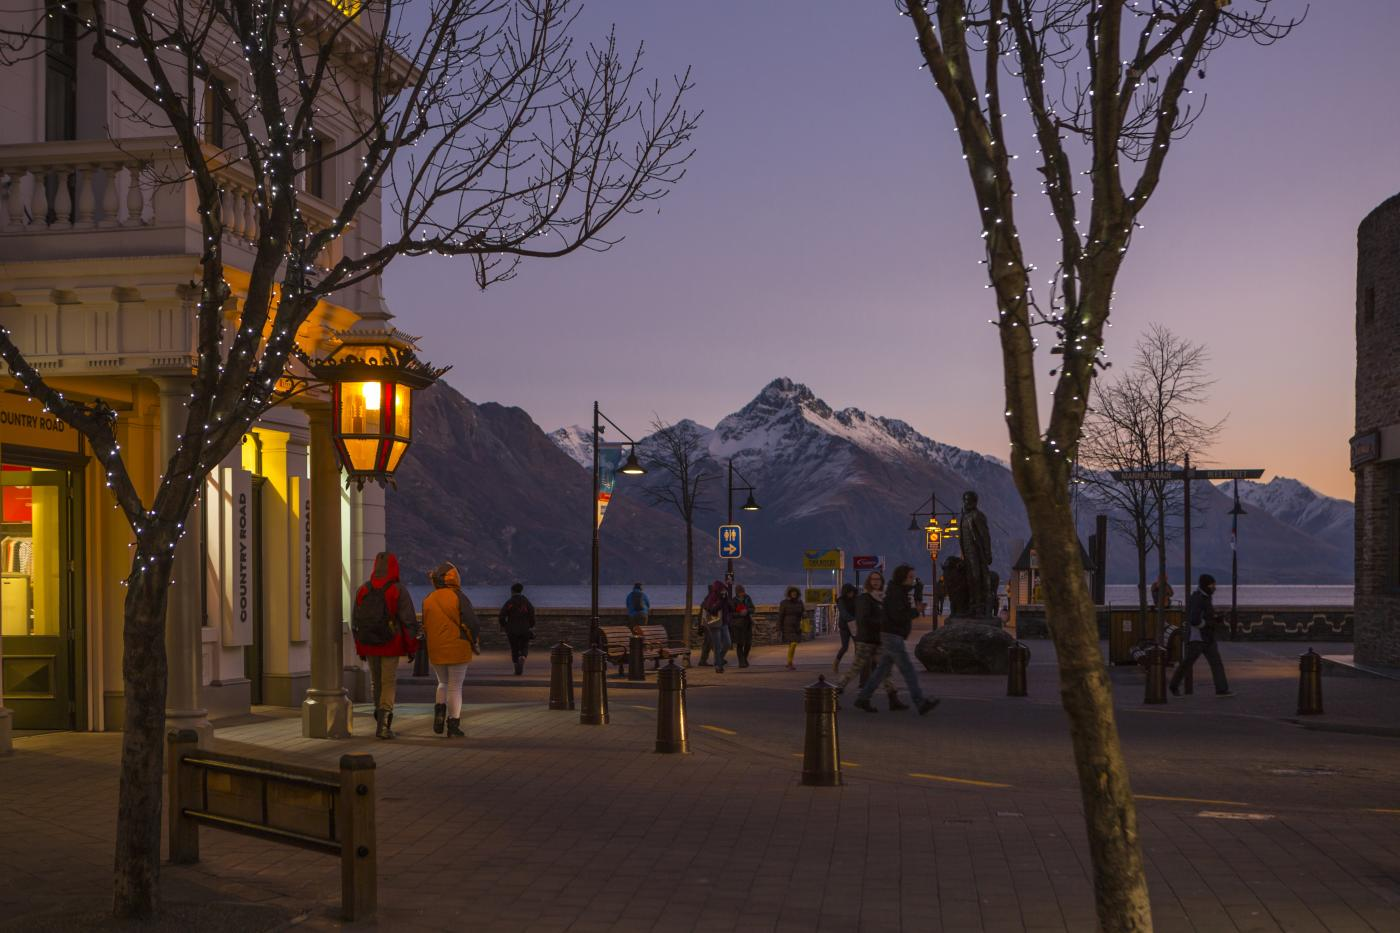 View of The Mall at Night with view of mountains